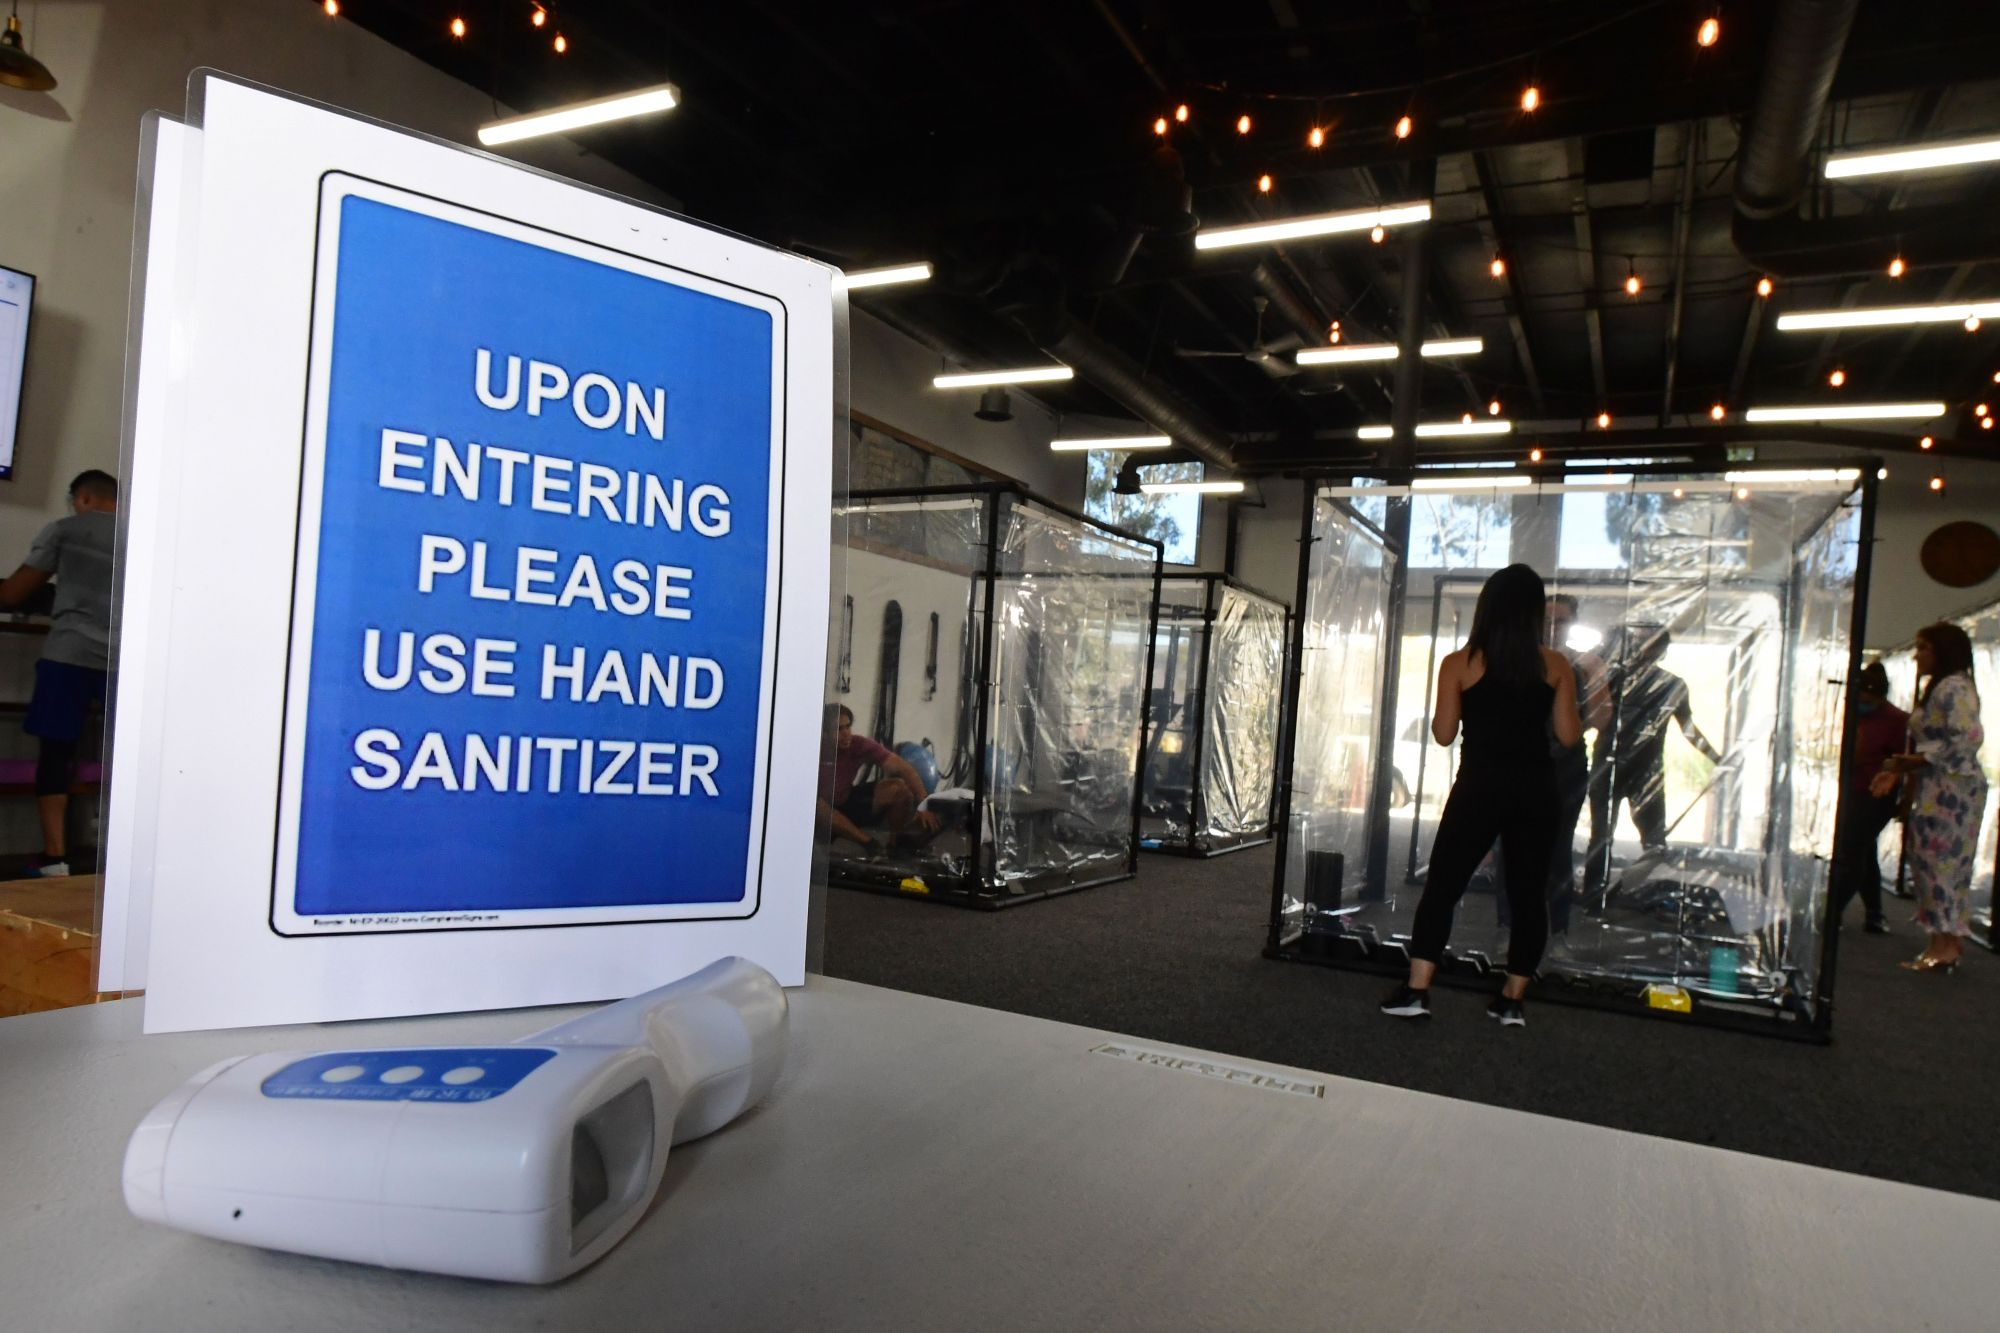 A sign is pictured as people exercise at Inspire South Bay Fitness behind plastic sheets in their workout pods while observing social distancing on June 15, 2020 in Redondo Beach, California. (FREDERIC J. BROWN/AFP via Getty Images)